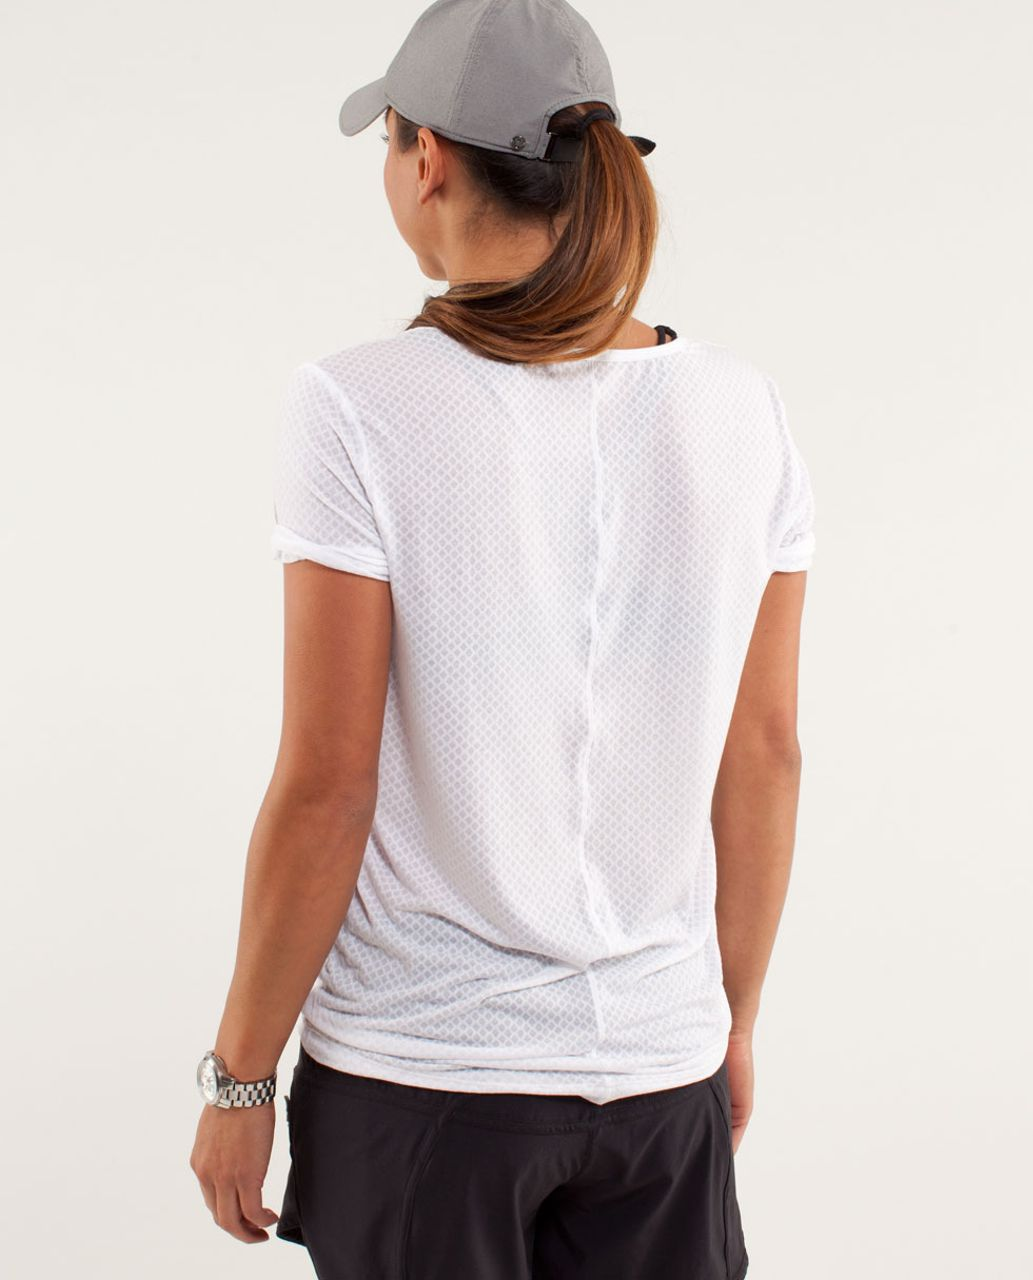 Lululemon Drish Tee - Mesh Burnout White / White